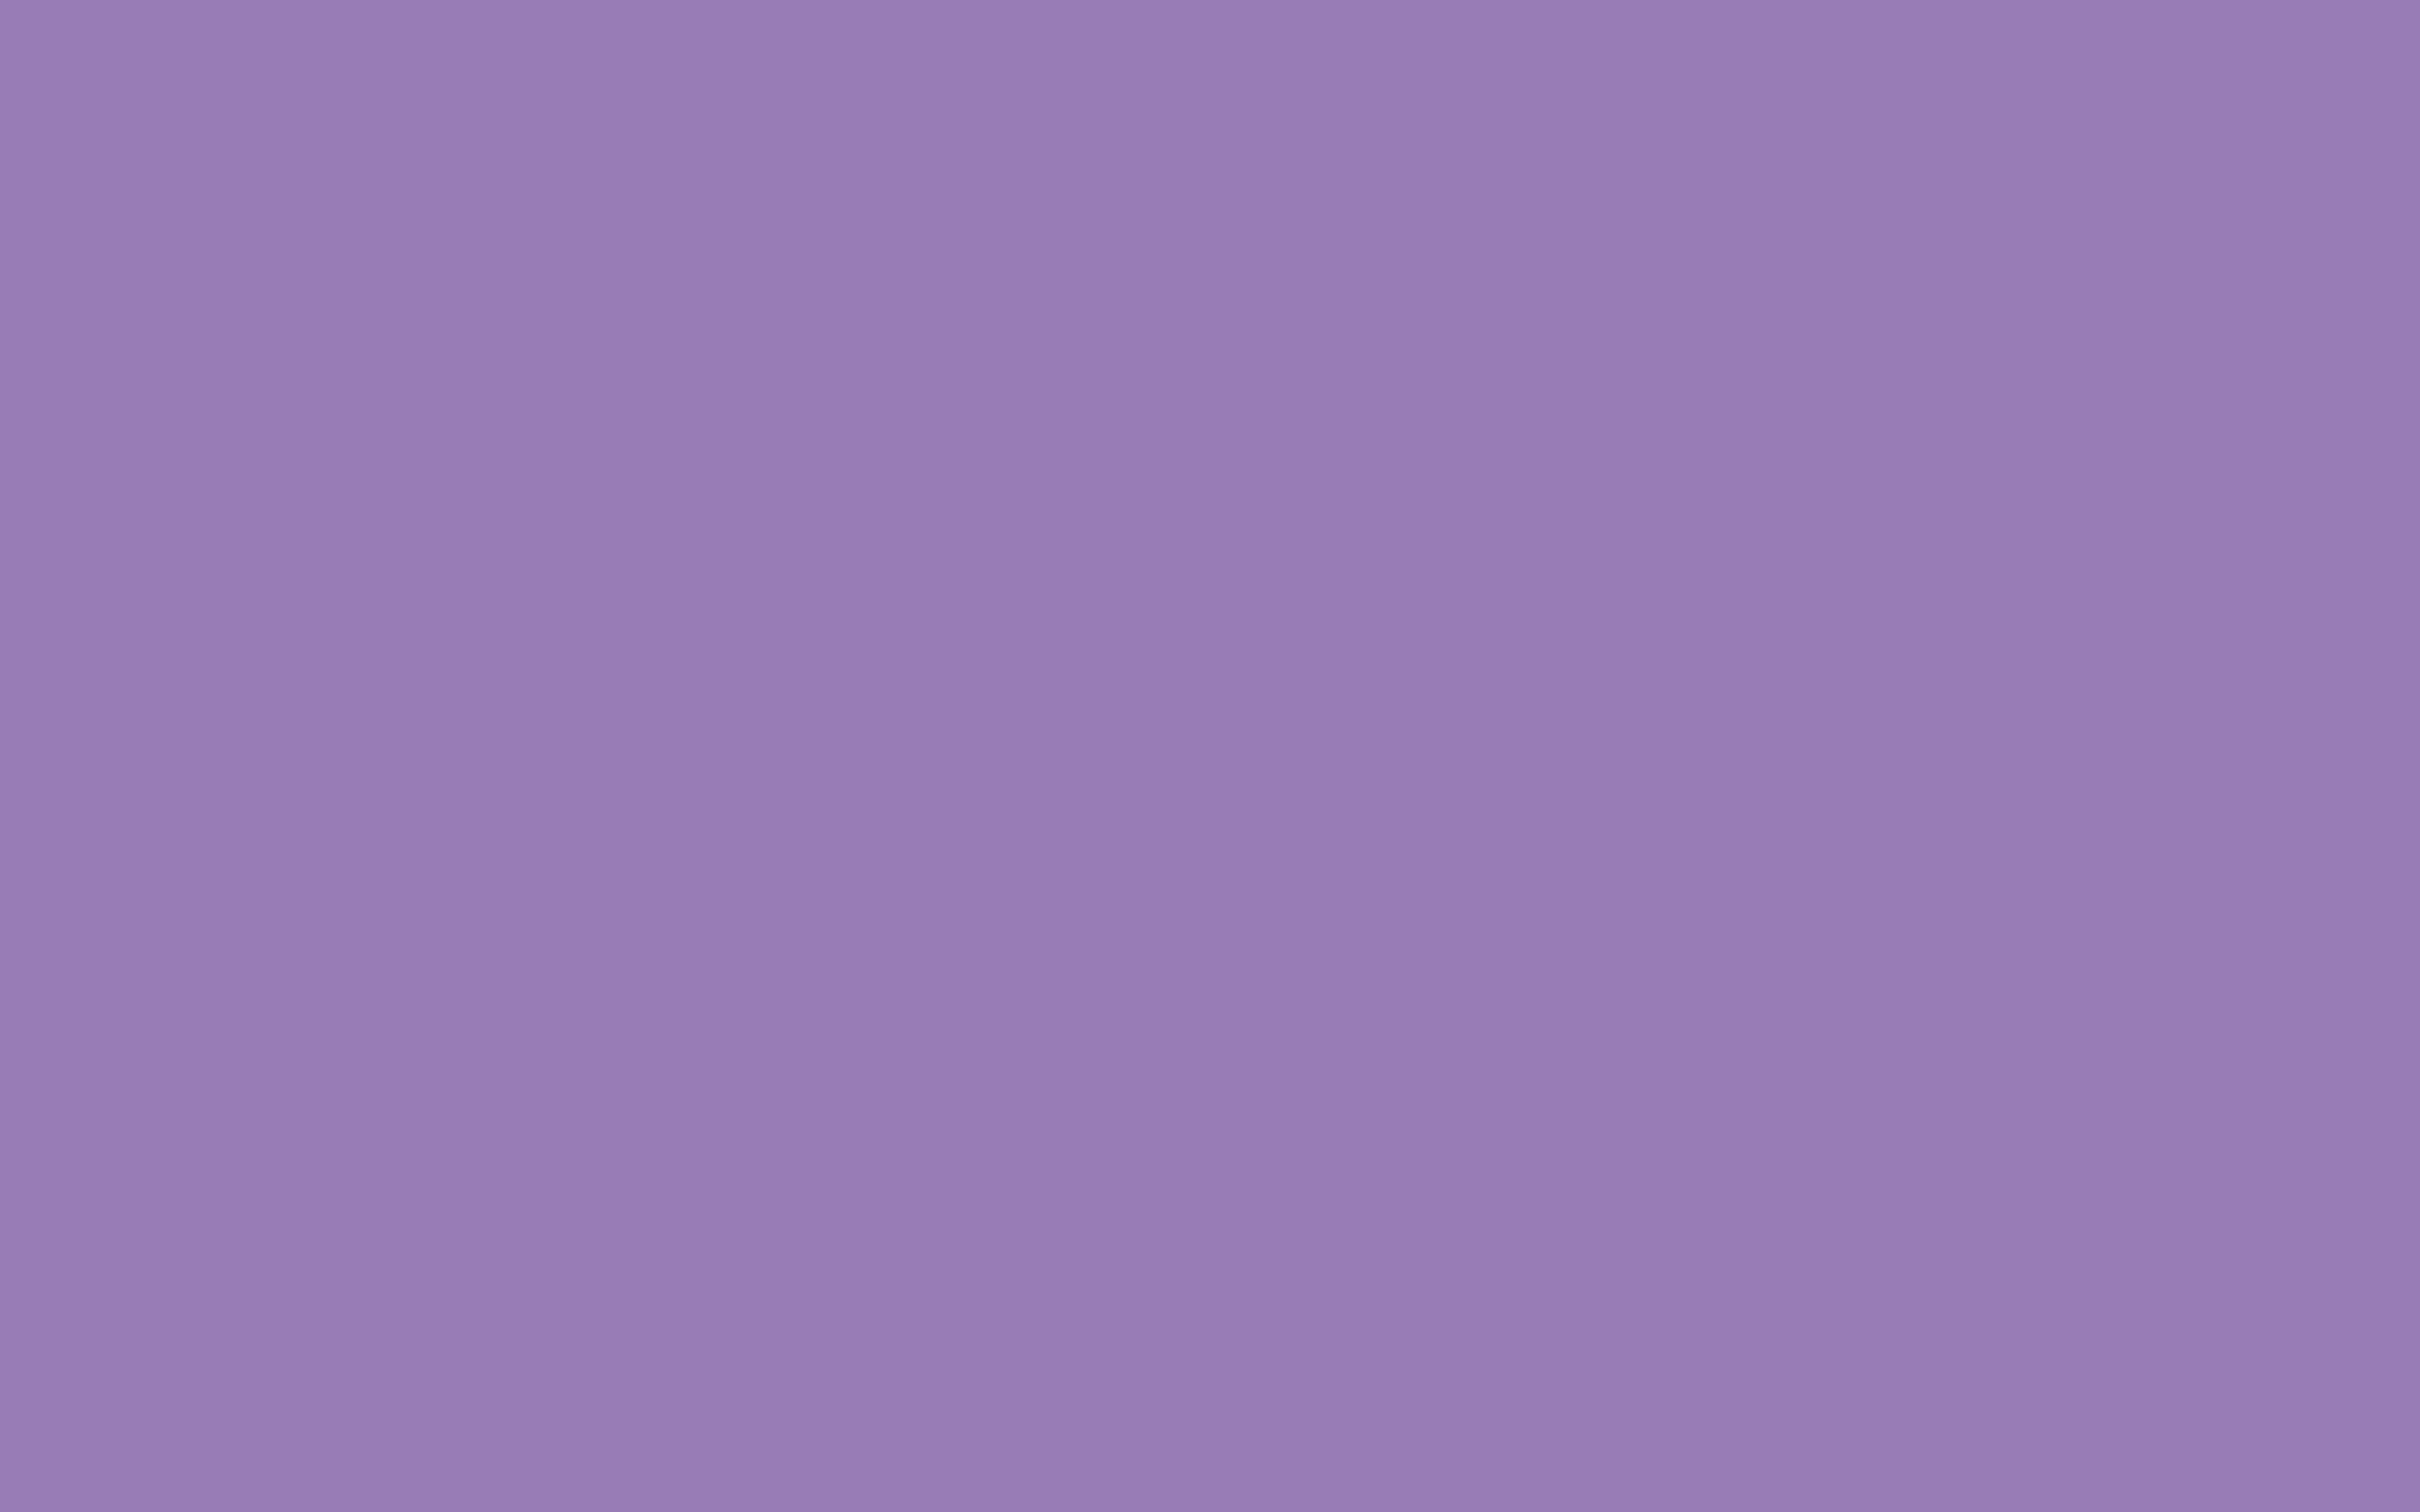 2560x1600 Lavender Purple Solid Color Background